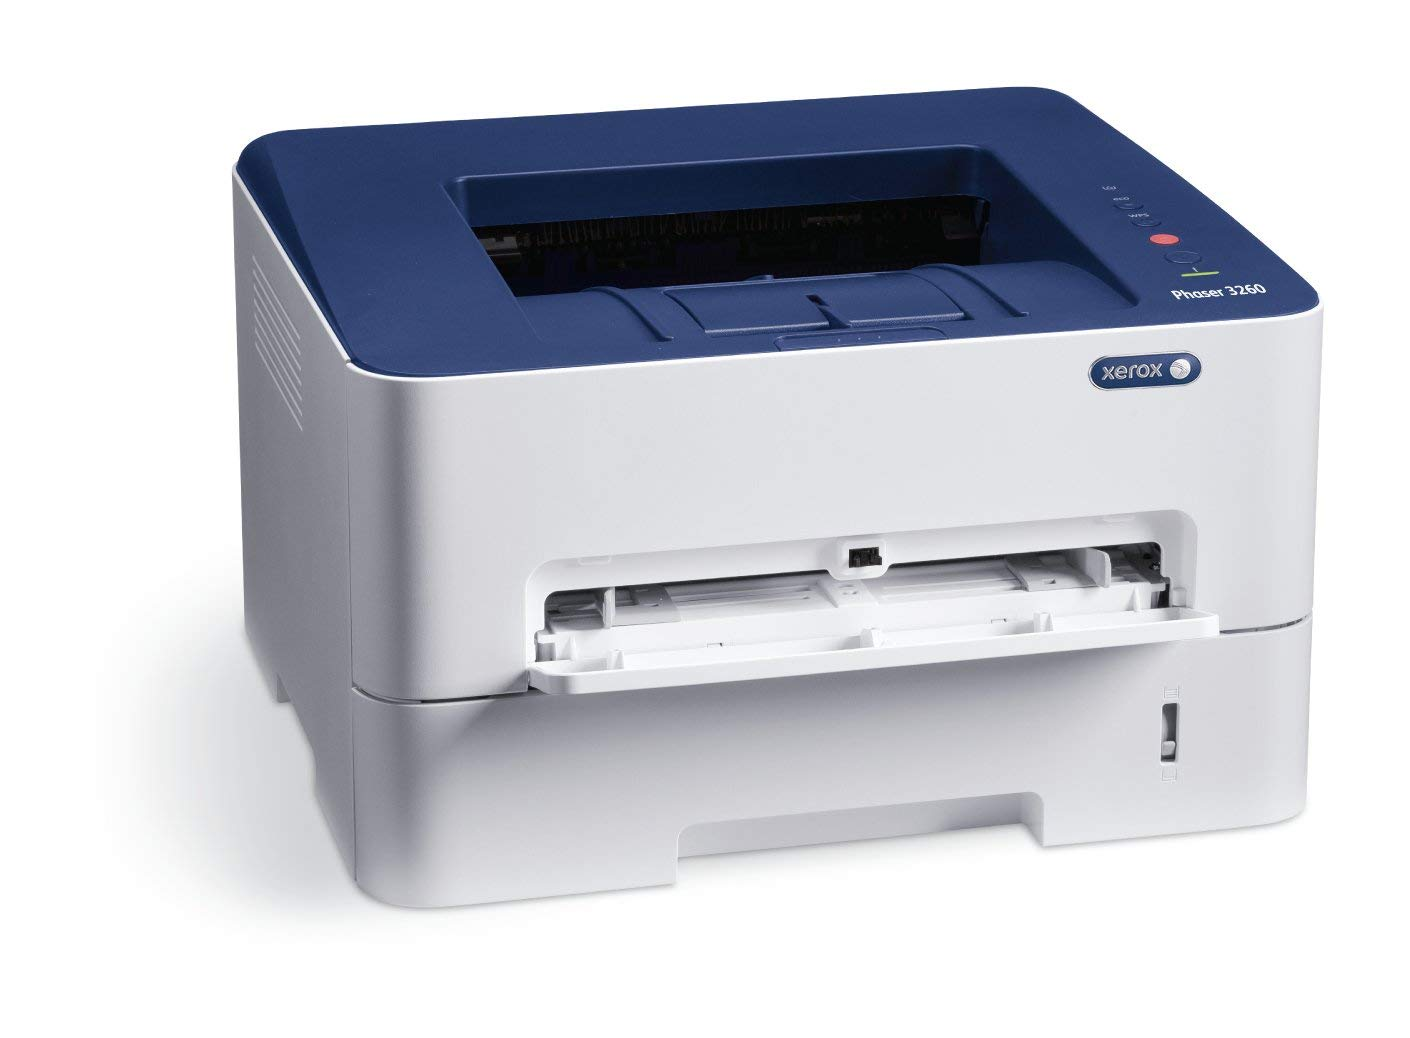 Xerox Phaser 3260 Monochrome Laser Printer With Built-In Wi-Fi Connectivity (Renewed) by Xerox (Image #4)